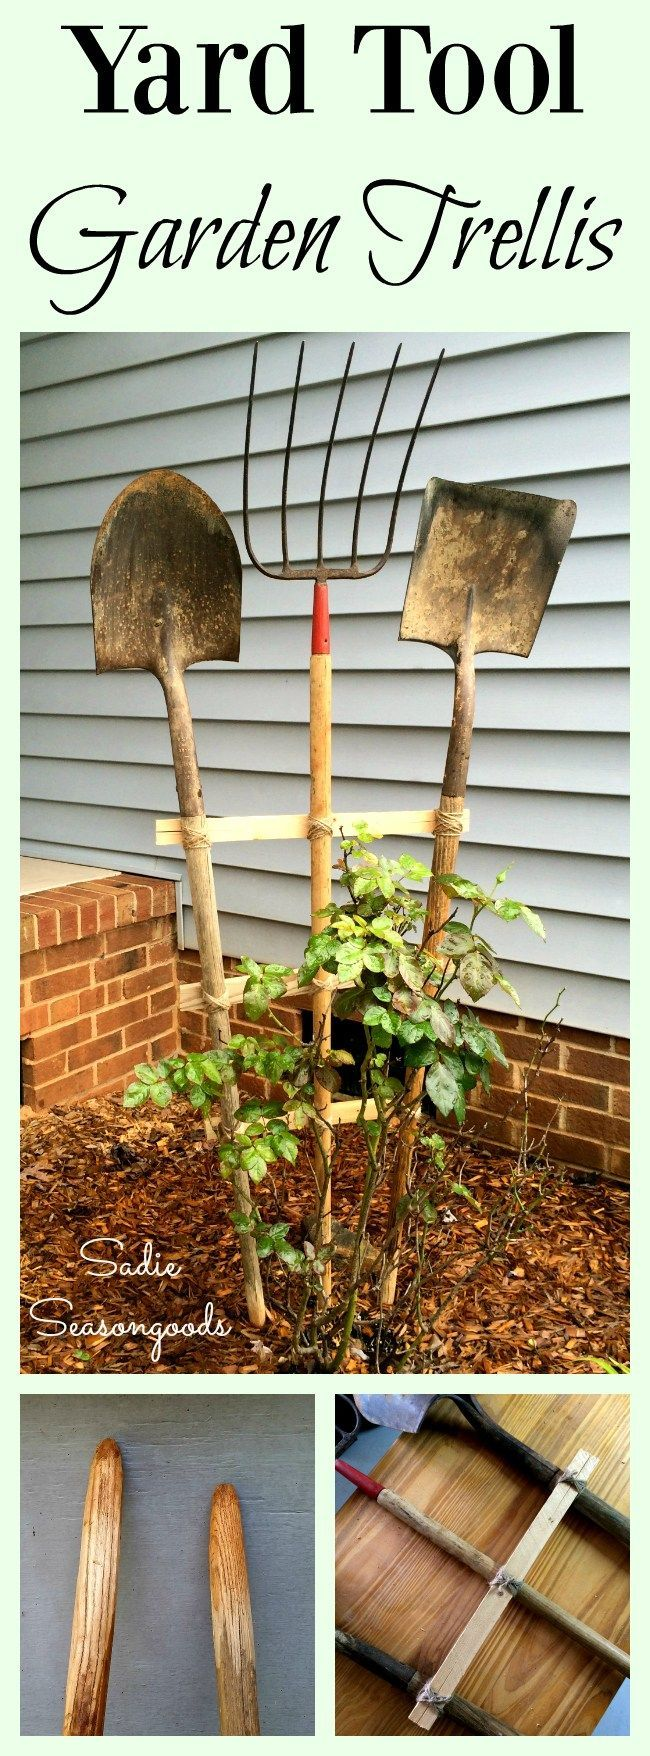 Old vintage garden tools from the thrift store or the barn out back are excellent for repurposing into a DIY trellis! Whether you need a trellis to be functional for climbing vines or just decorative to add a rustic farmhouse touch to your yard, this DIY tutorial will guide you through the creative process. Great Fixer Upper style upcycle craft project from #SadieSeasongoods / www.sadieseasongoods.com